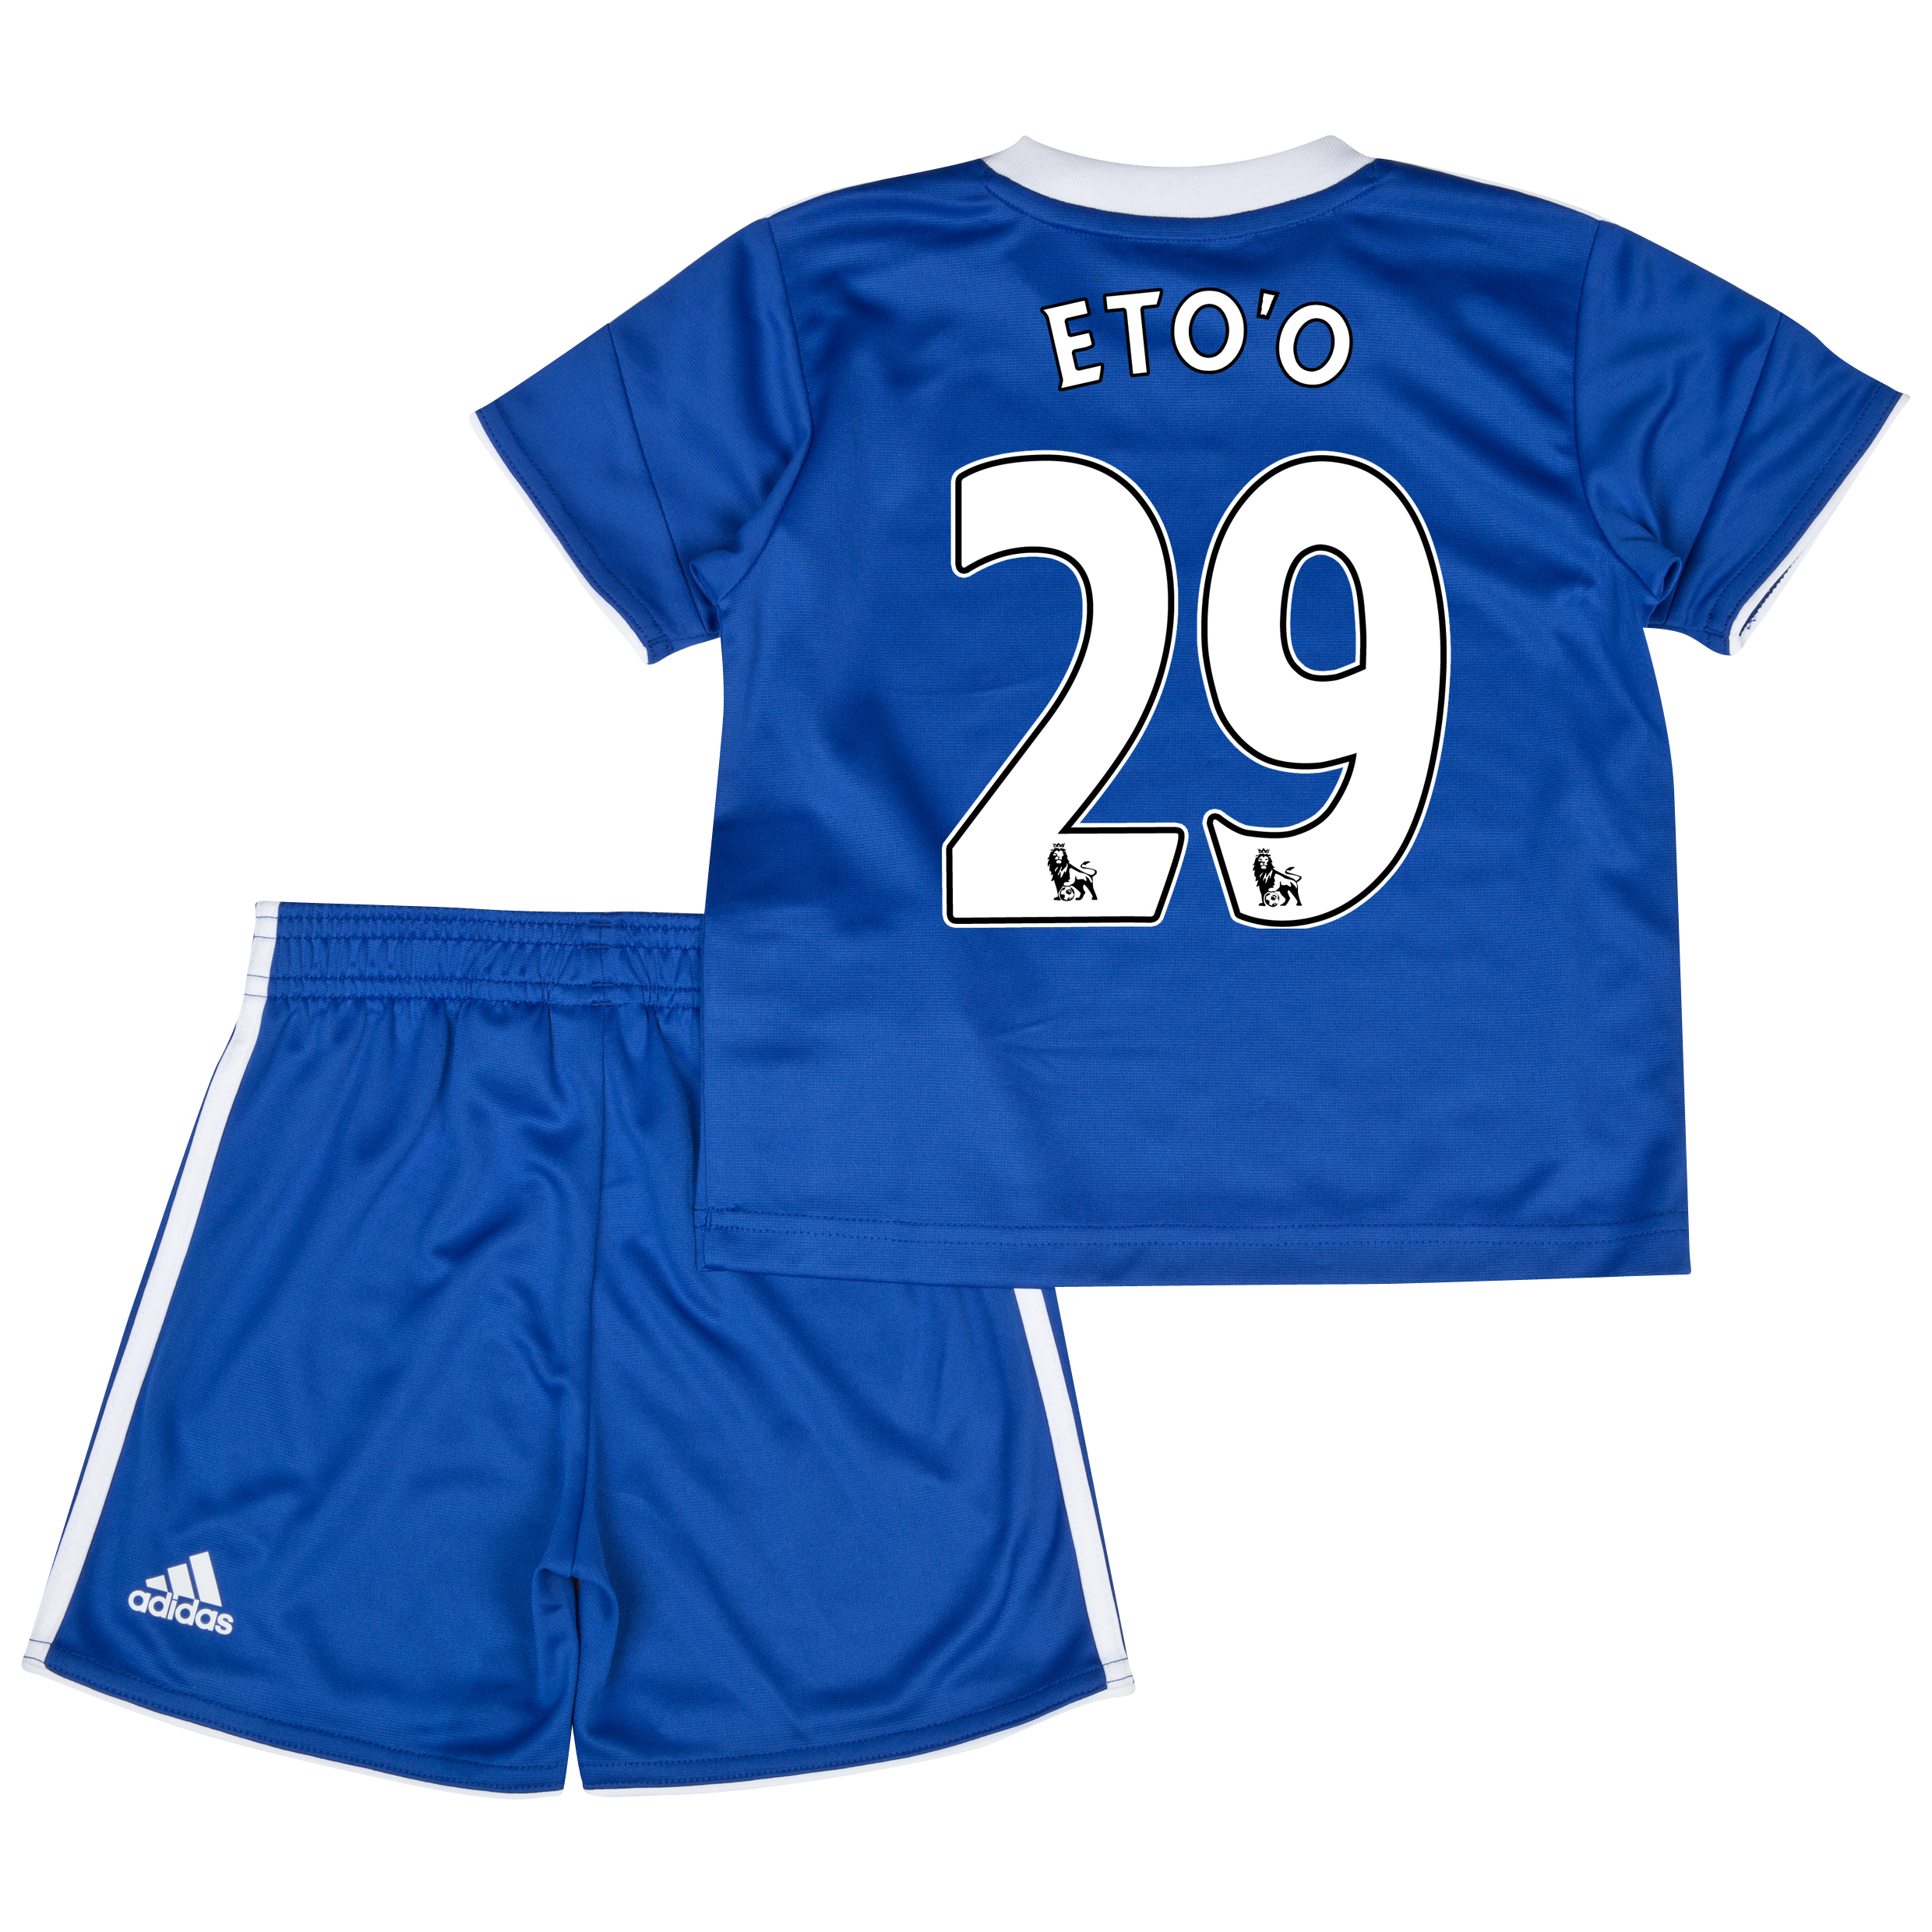 Chelsea Home Mini Kit 2013/14 with Eto'o 29 printing